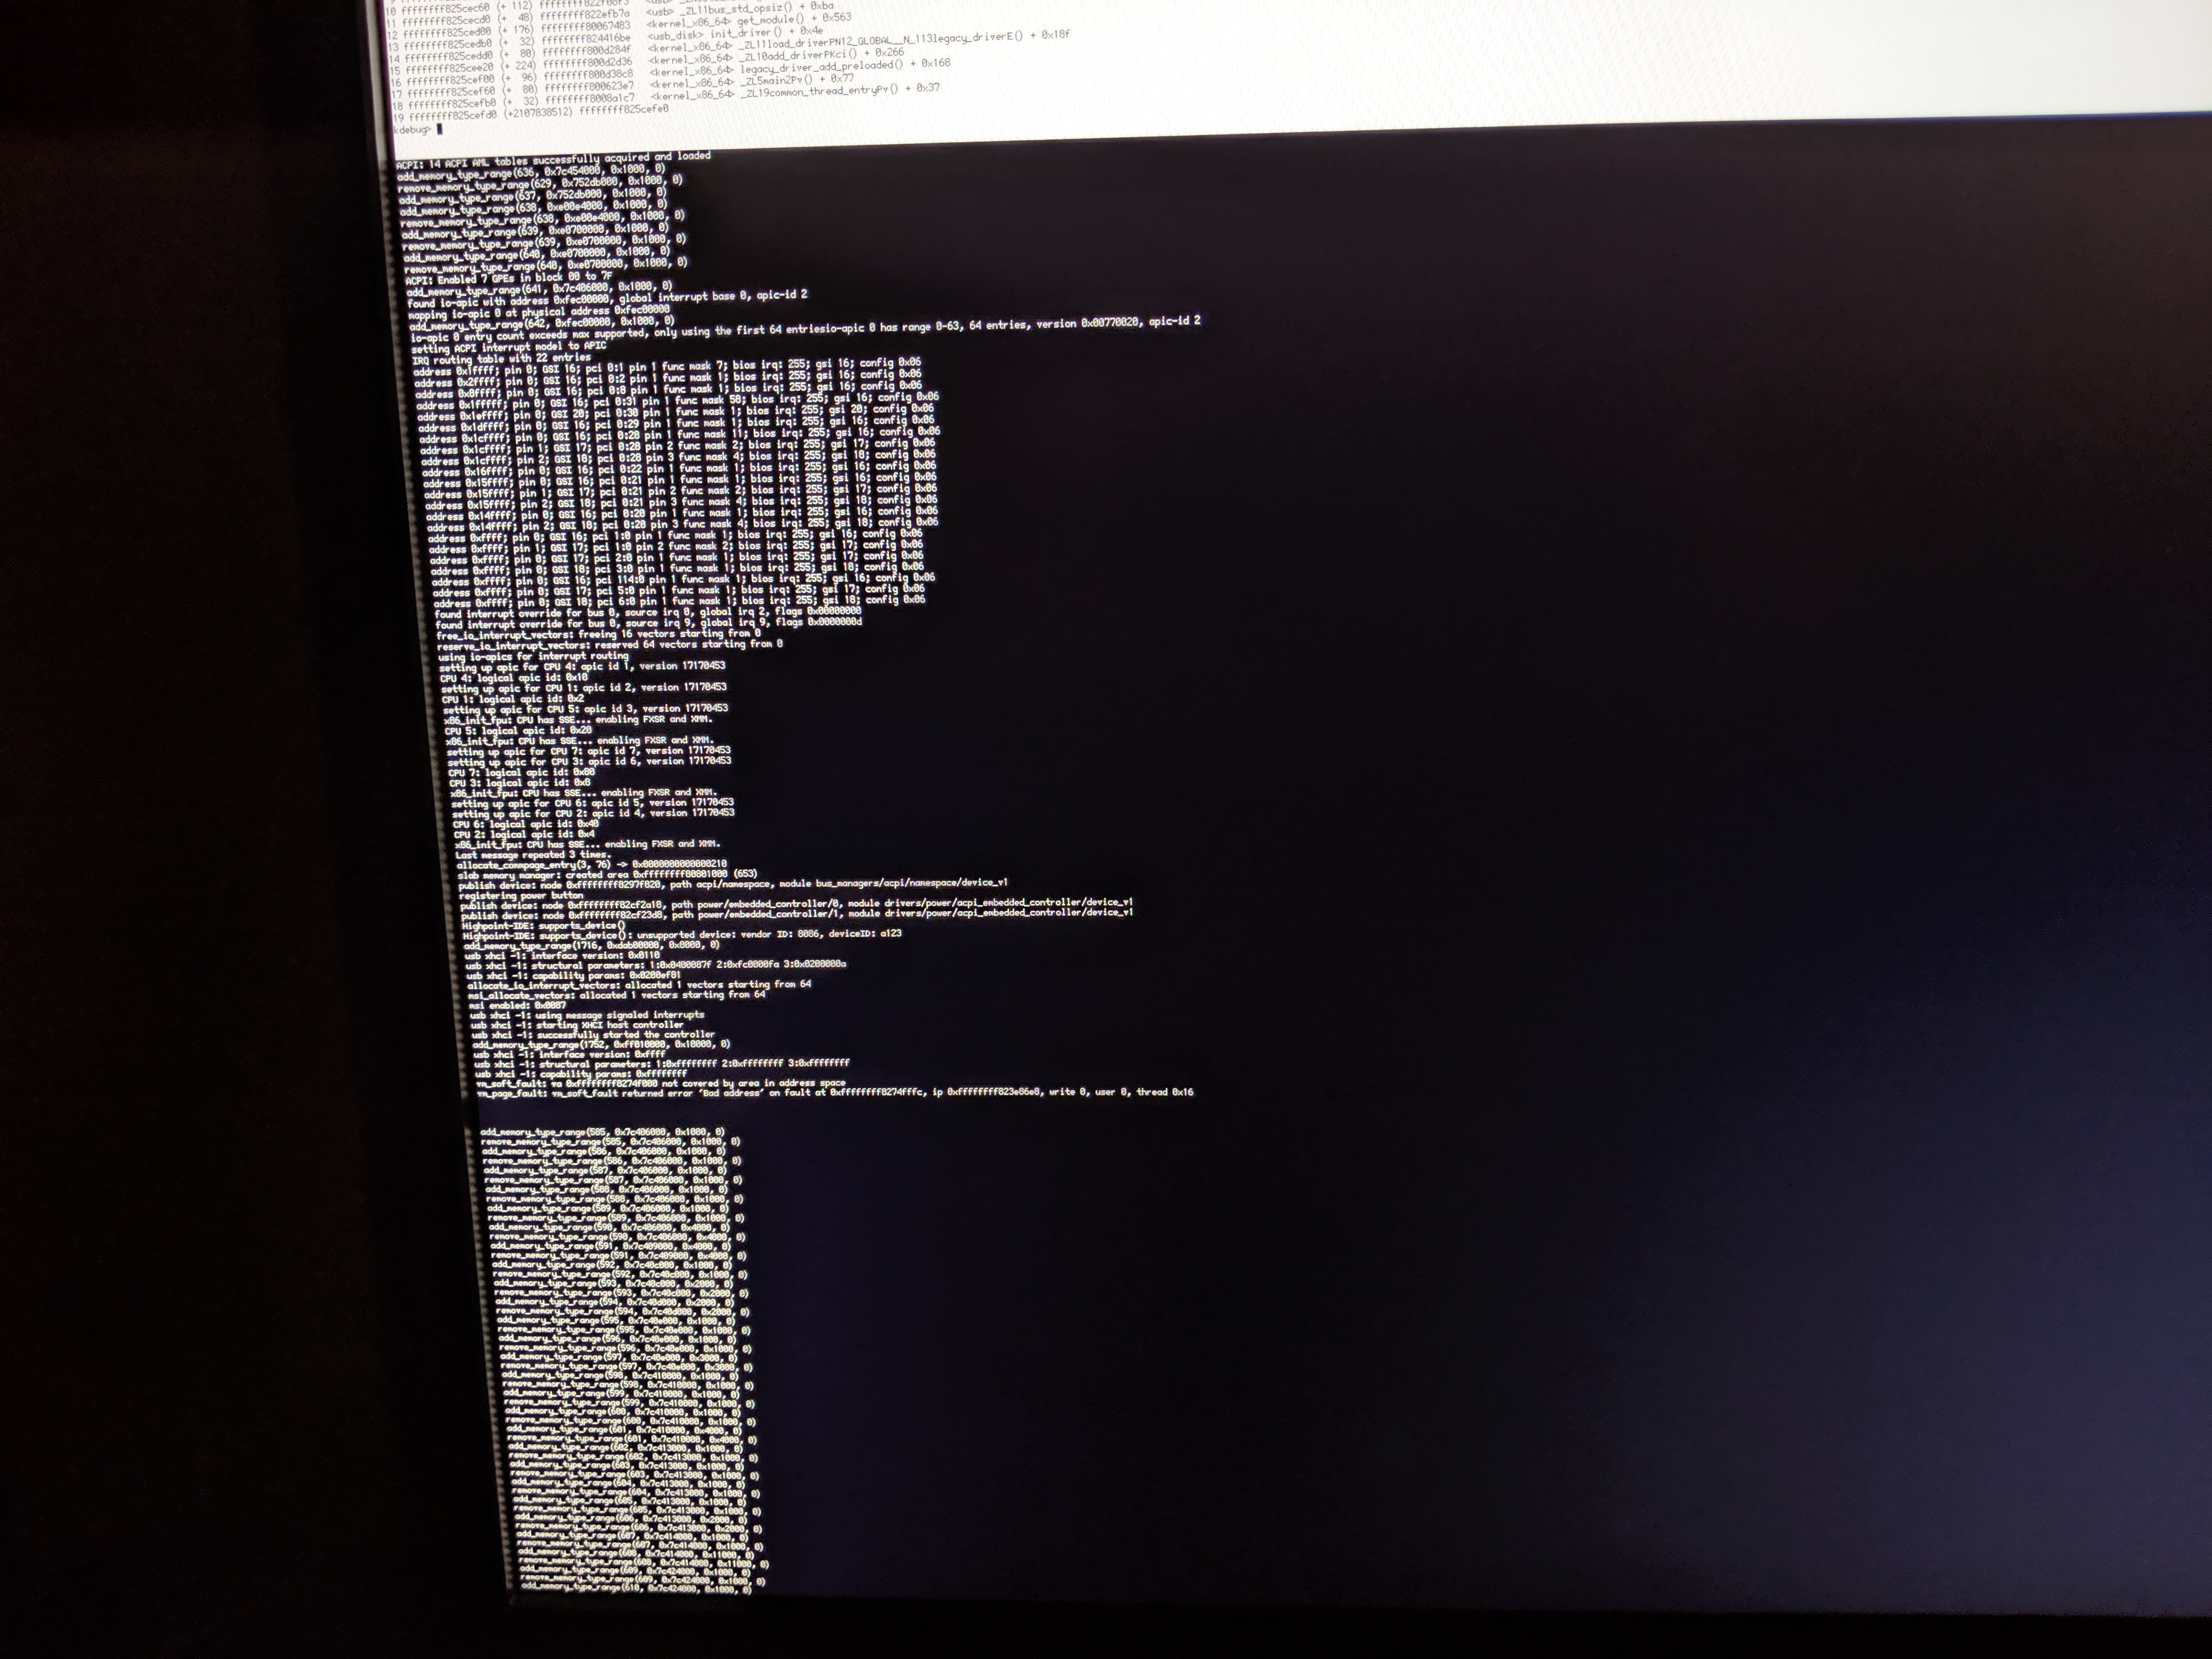 14557 (KDL when booting on Intel